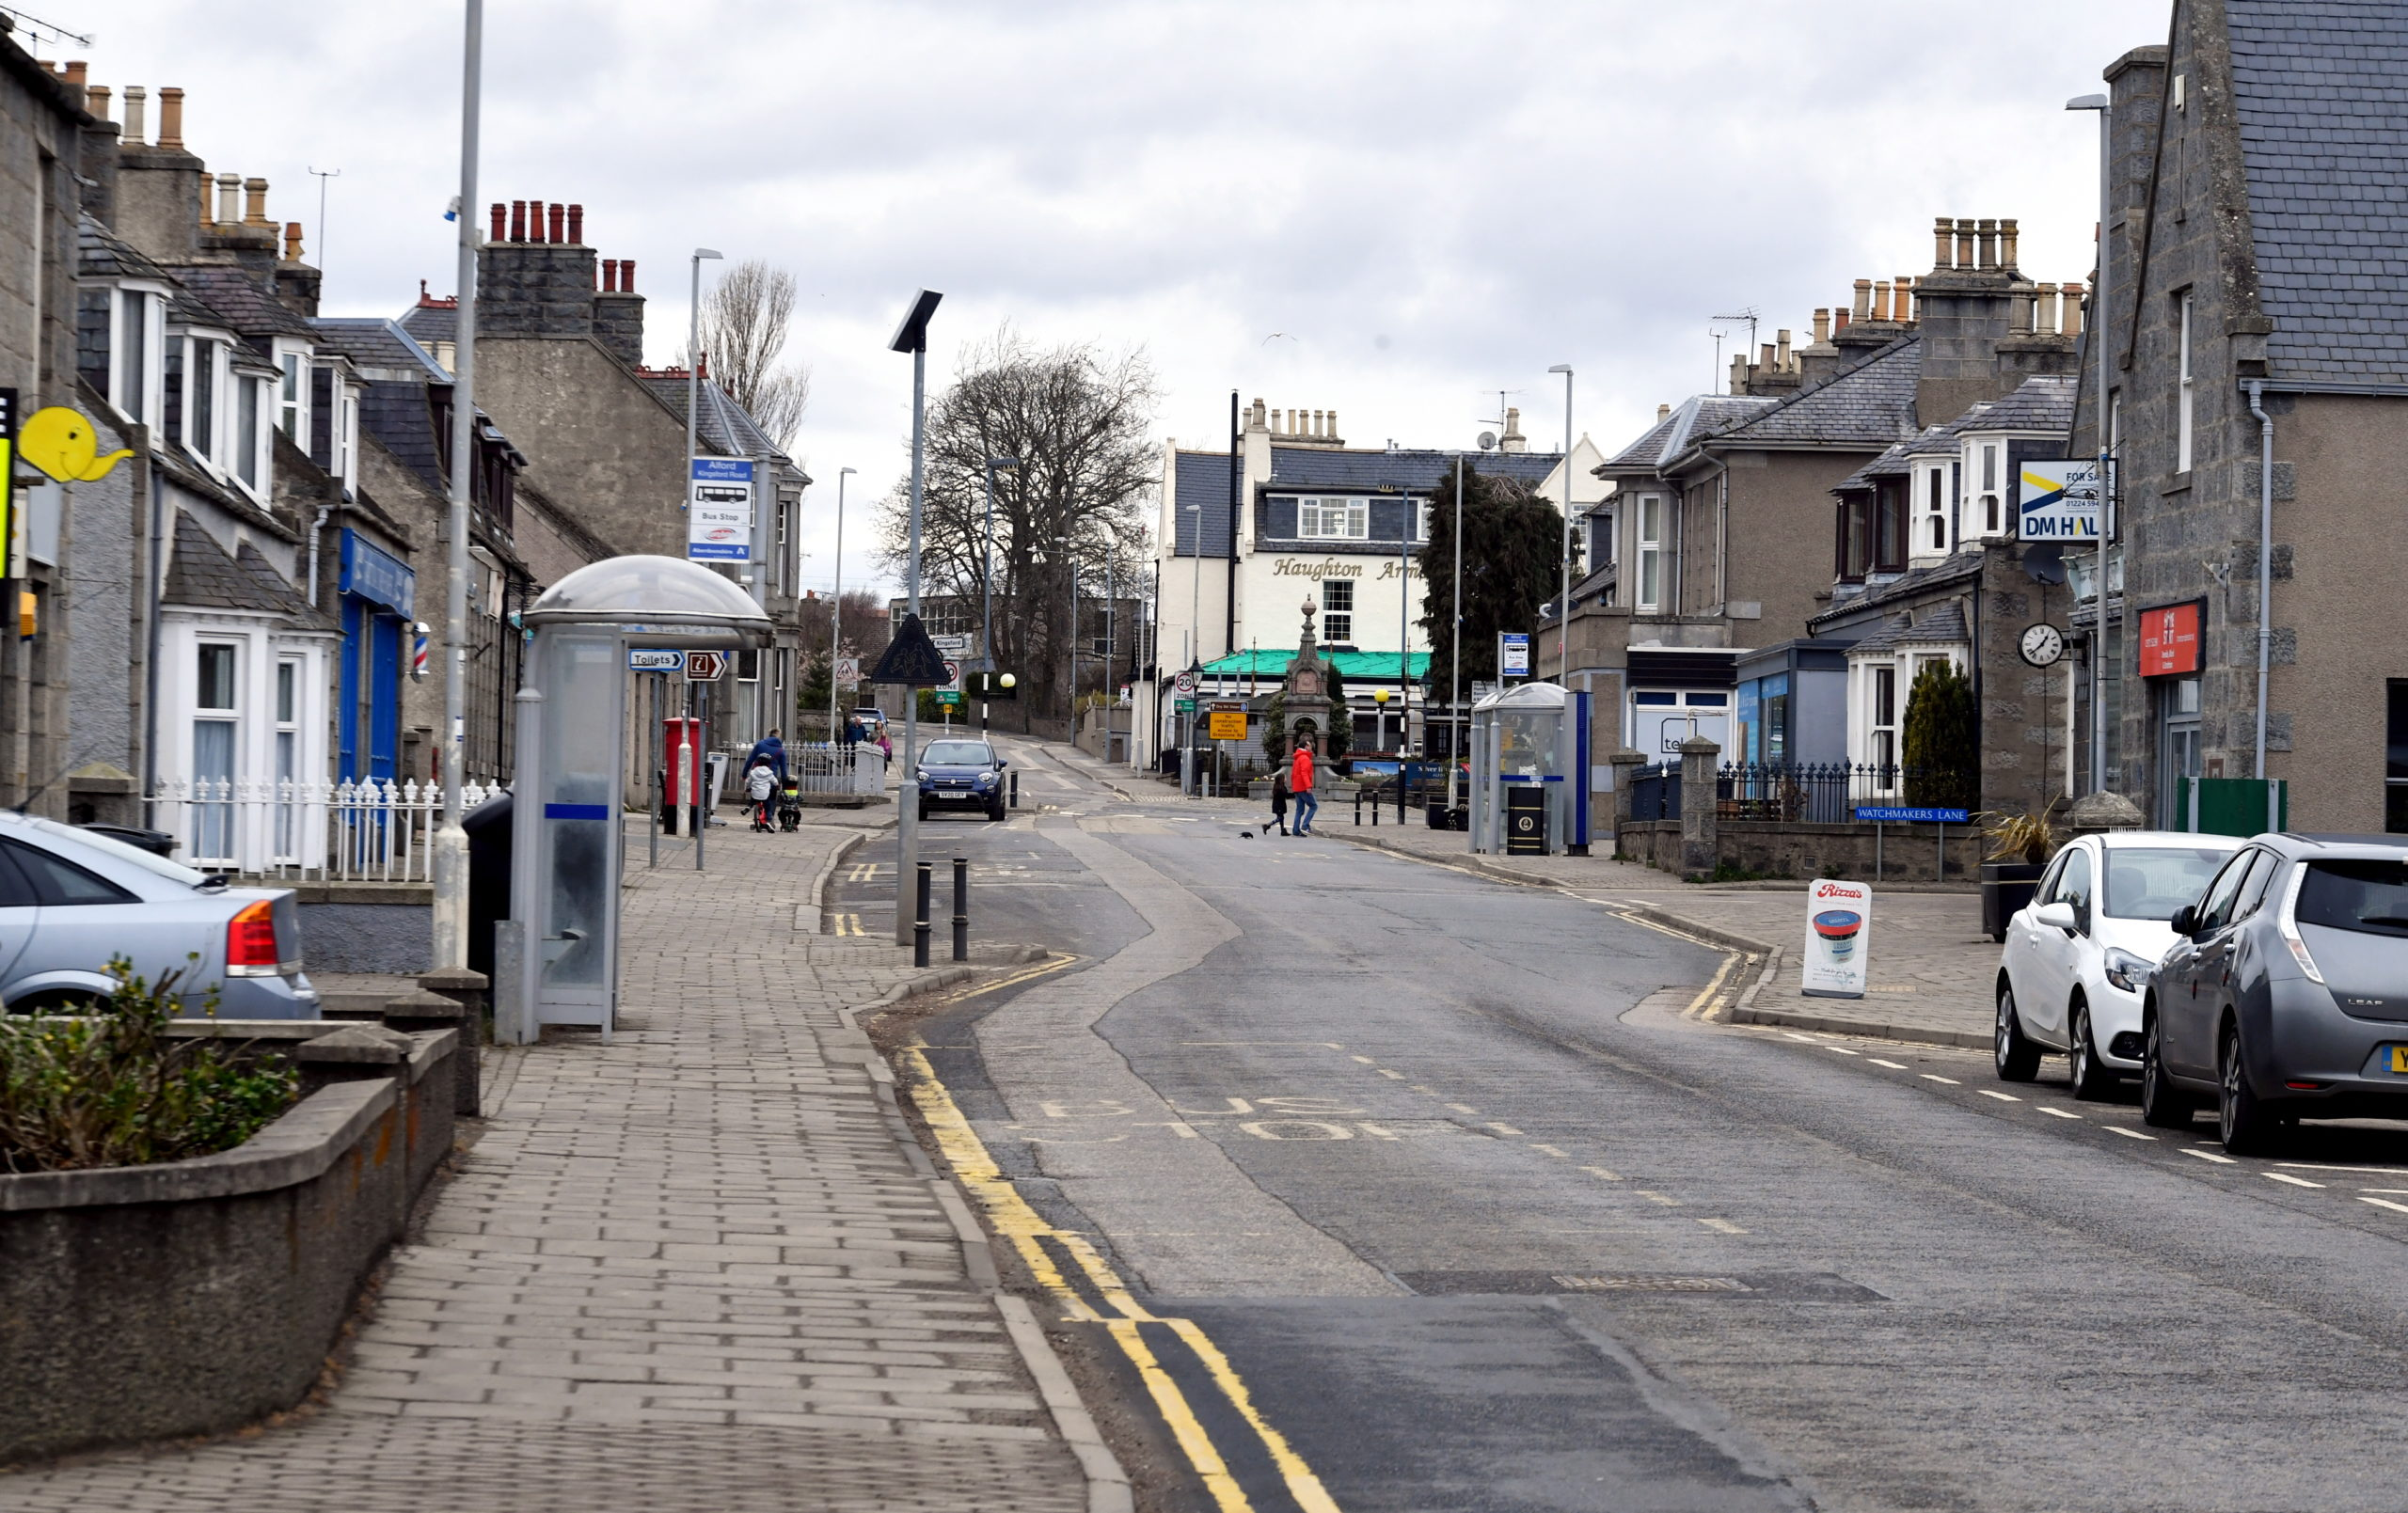 The main street in Alford